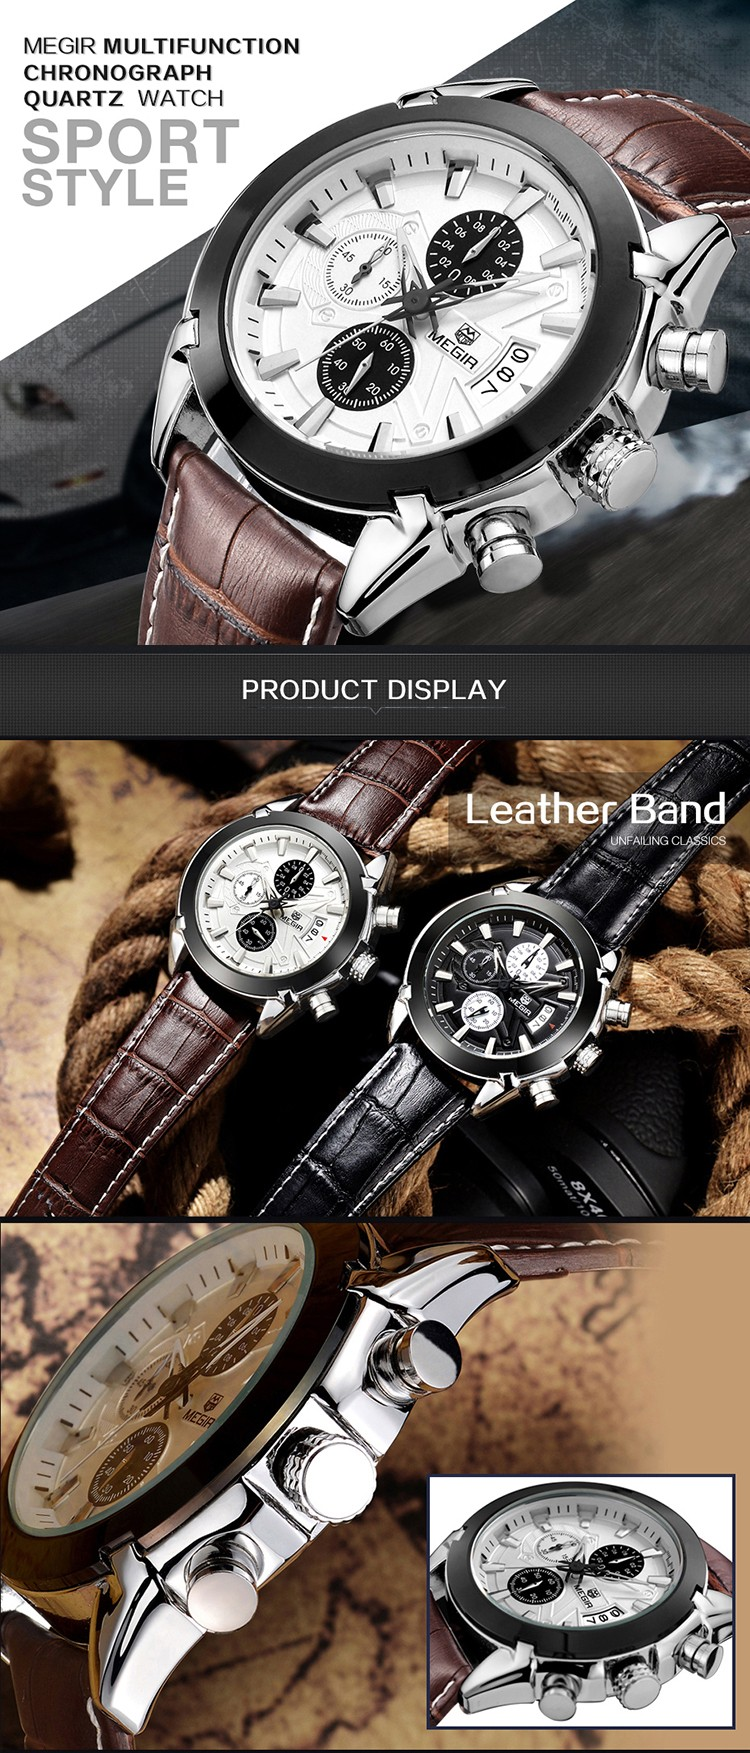 Top 10 Watch Brands Men S Military Watches Chronograph Date Quartz Clock Waterproof Leather Men Business Luxury Megir 2020 Watch Buy Megir Watch Luxury Watch Men Business Watch Product On Alibaba Com